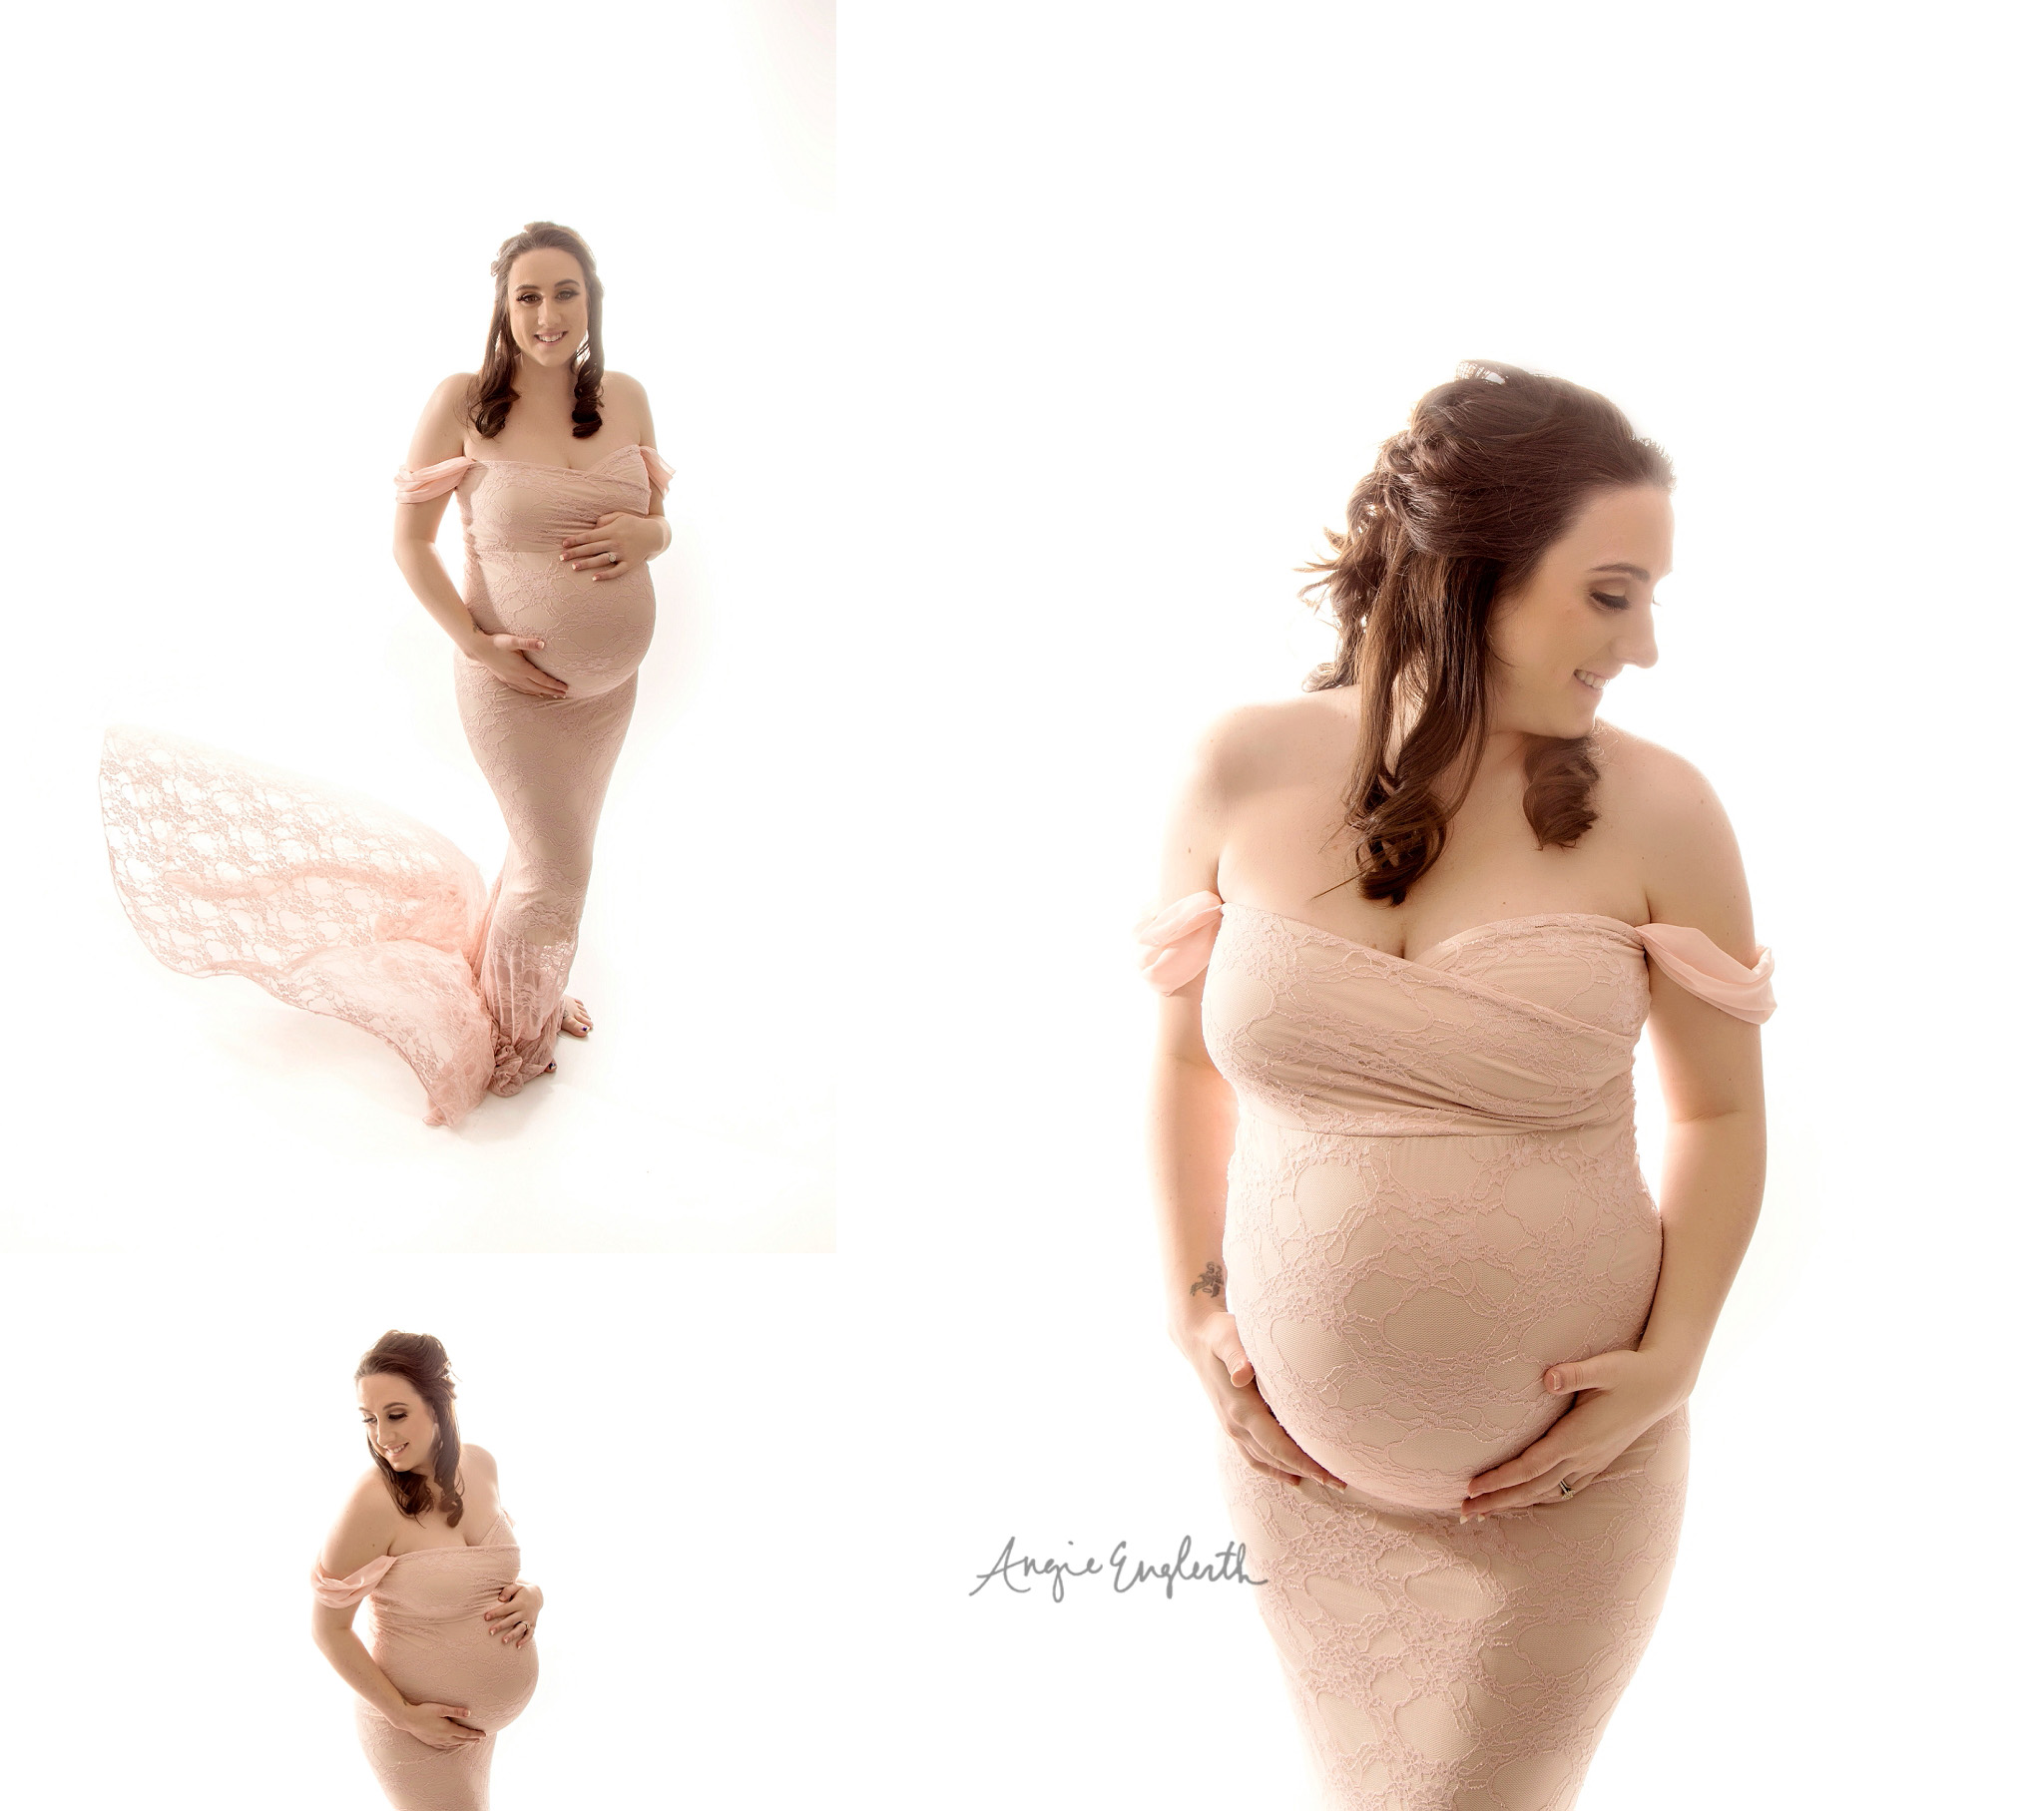 Lancaster_maternity_and_newborn_photographer_angie_englerth_007.jpg